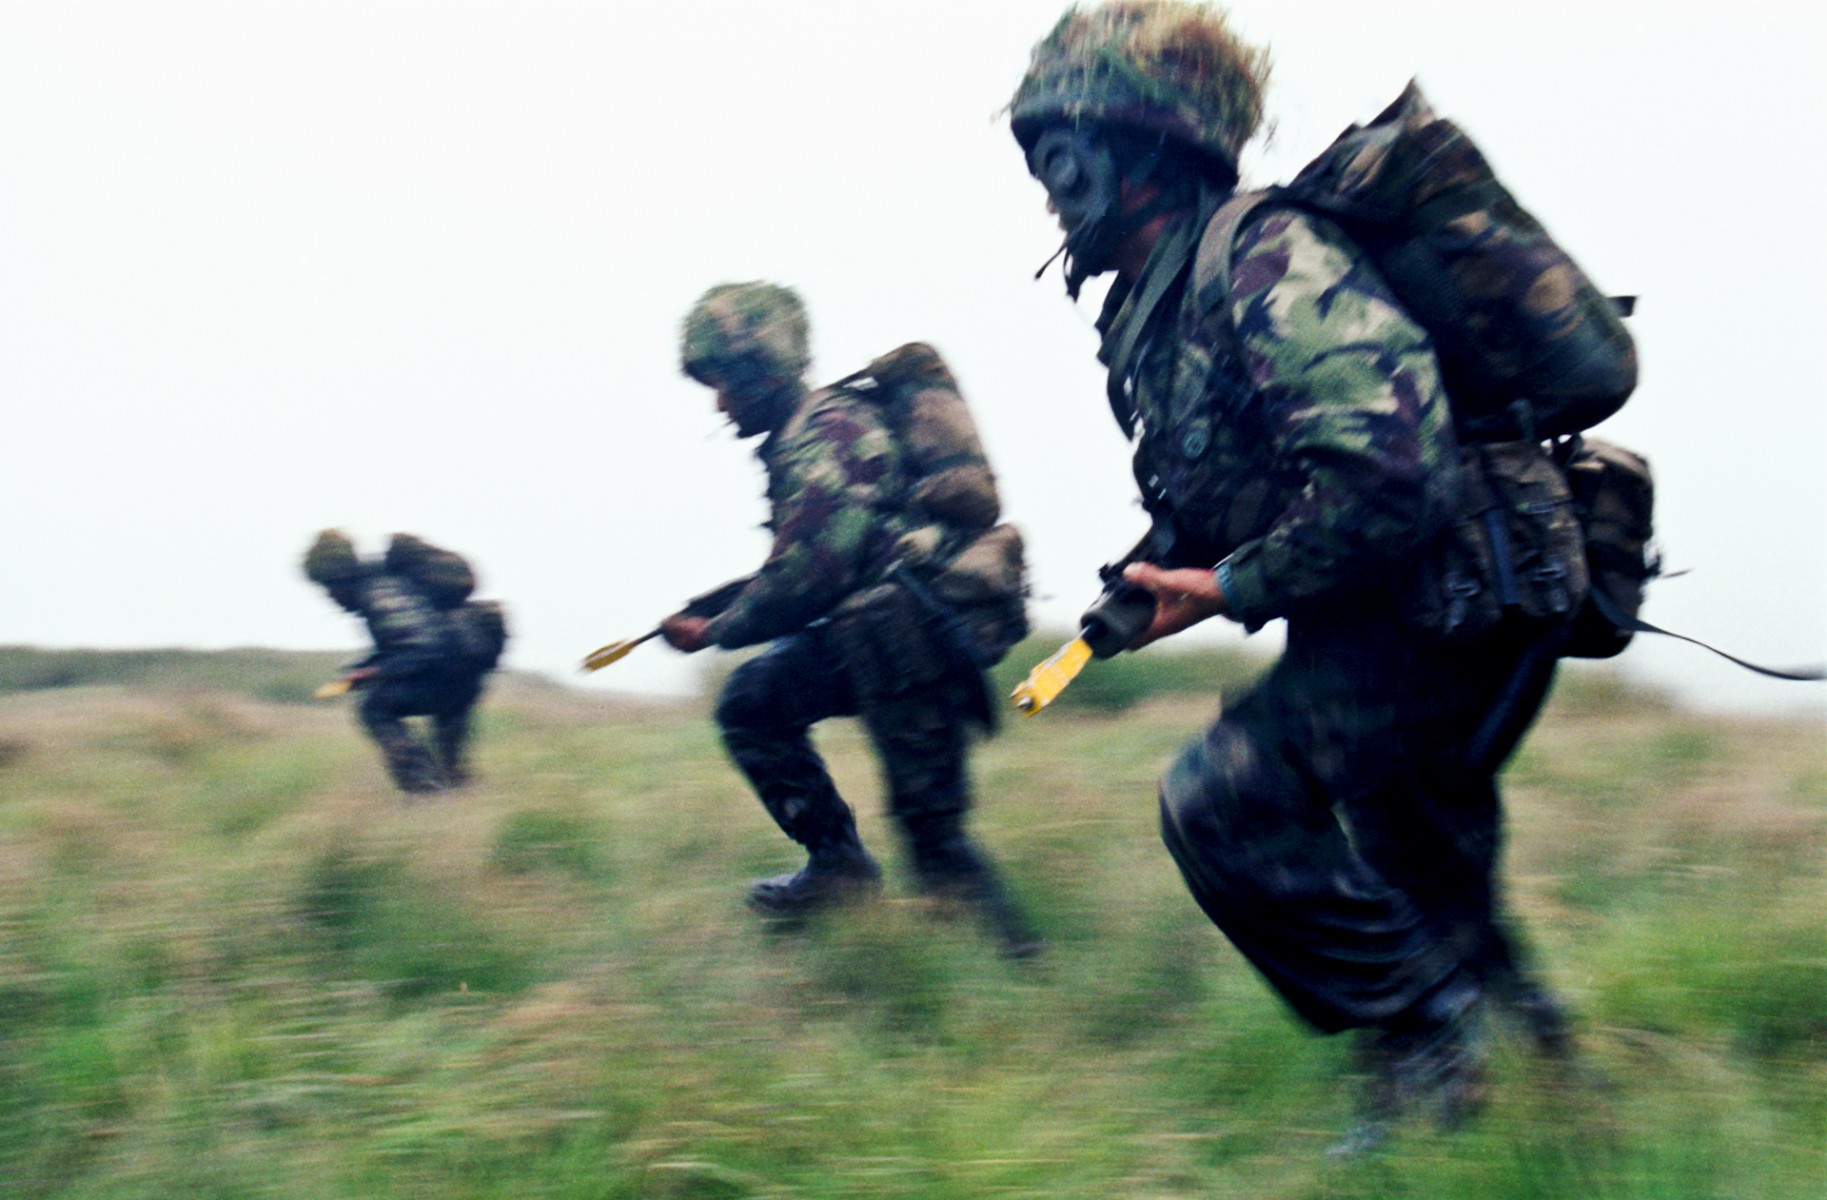 Infantry exercise, Scotland